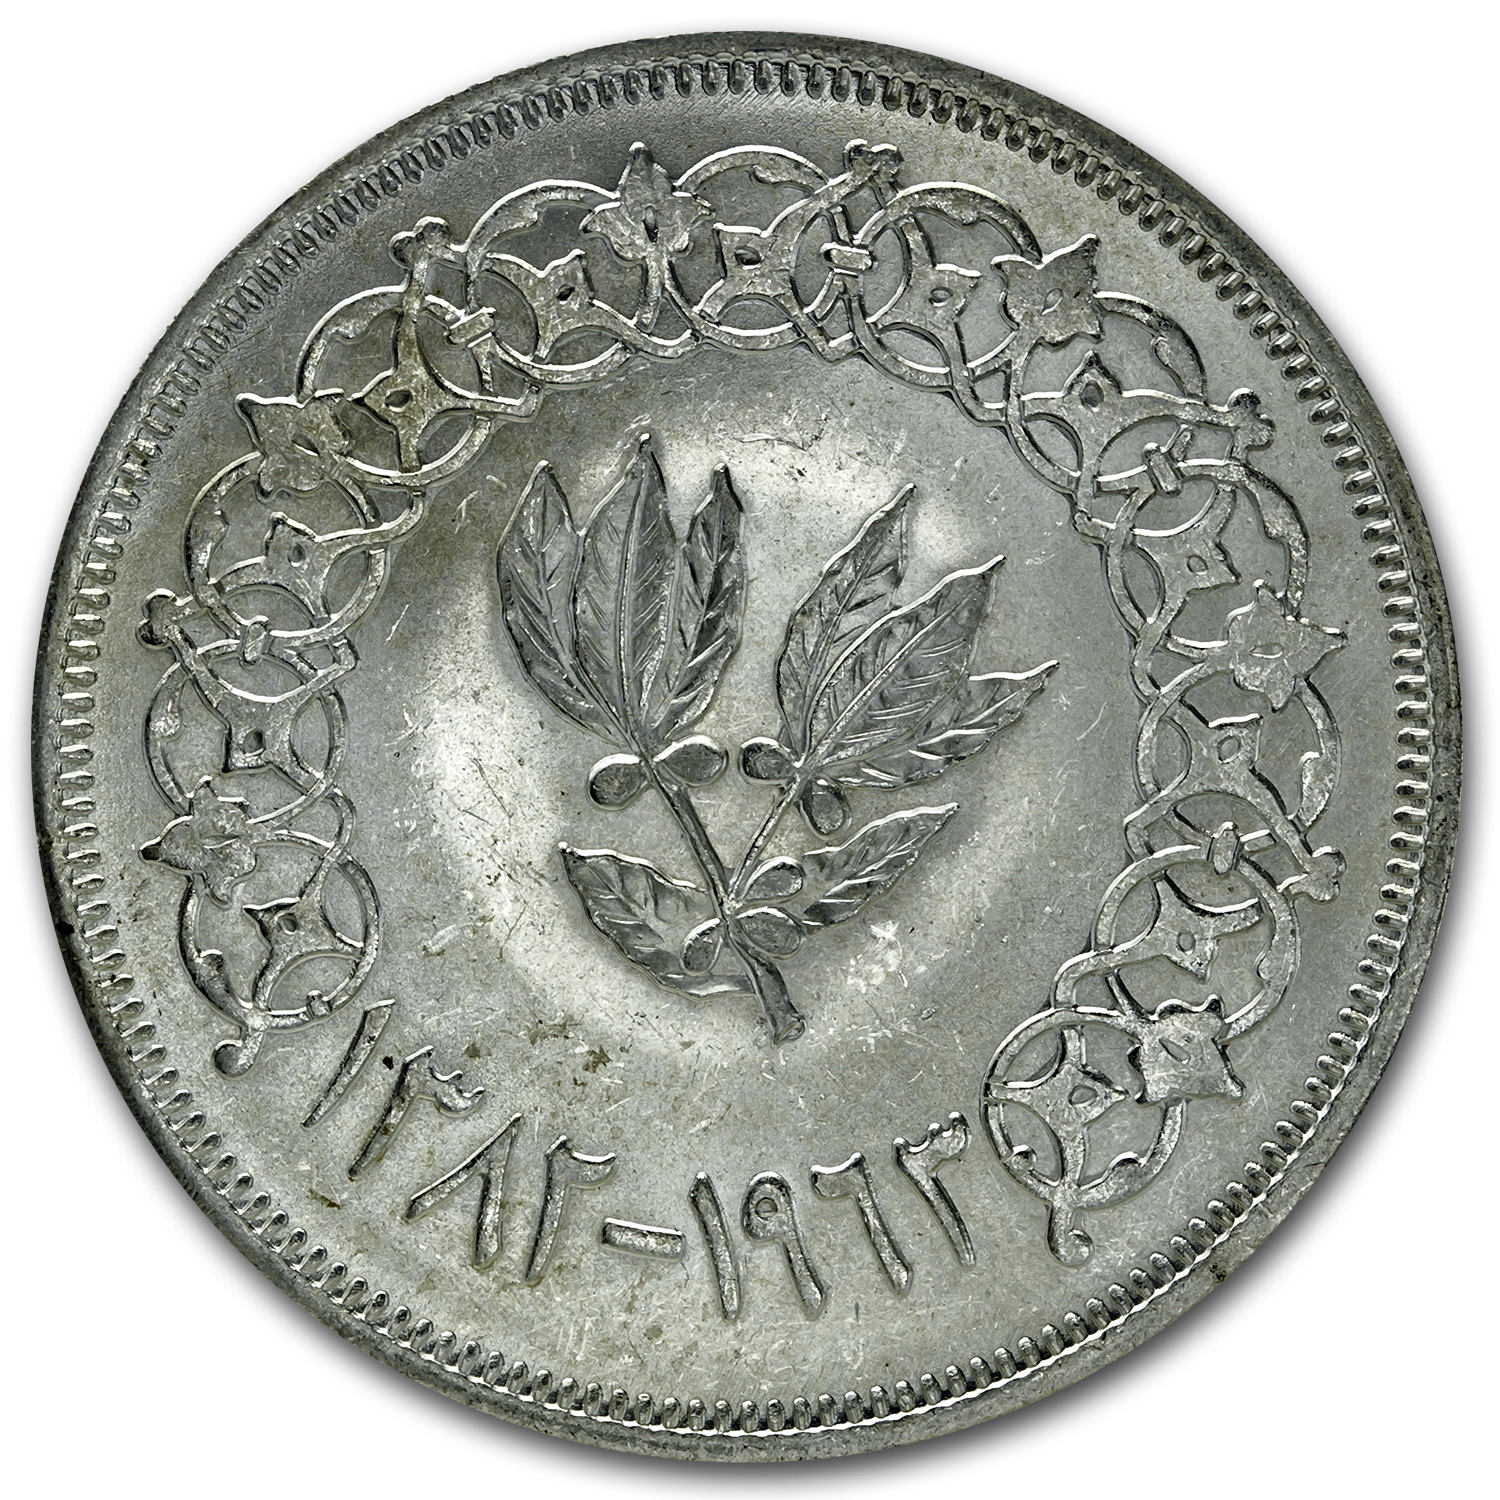 Yemen Arab Republic AH1382-1963 Riyal Silver AU